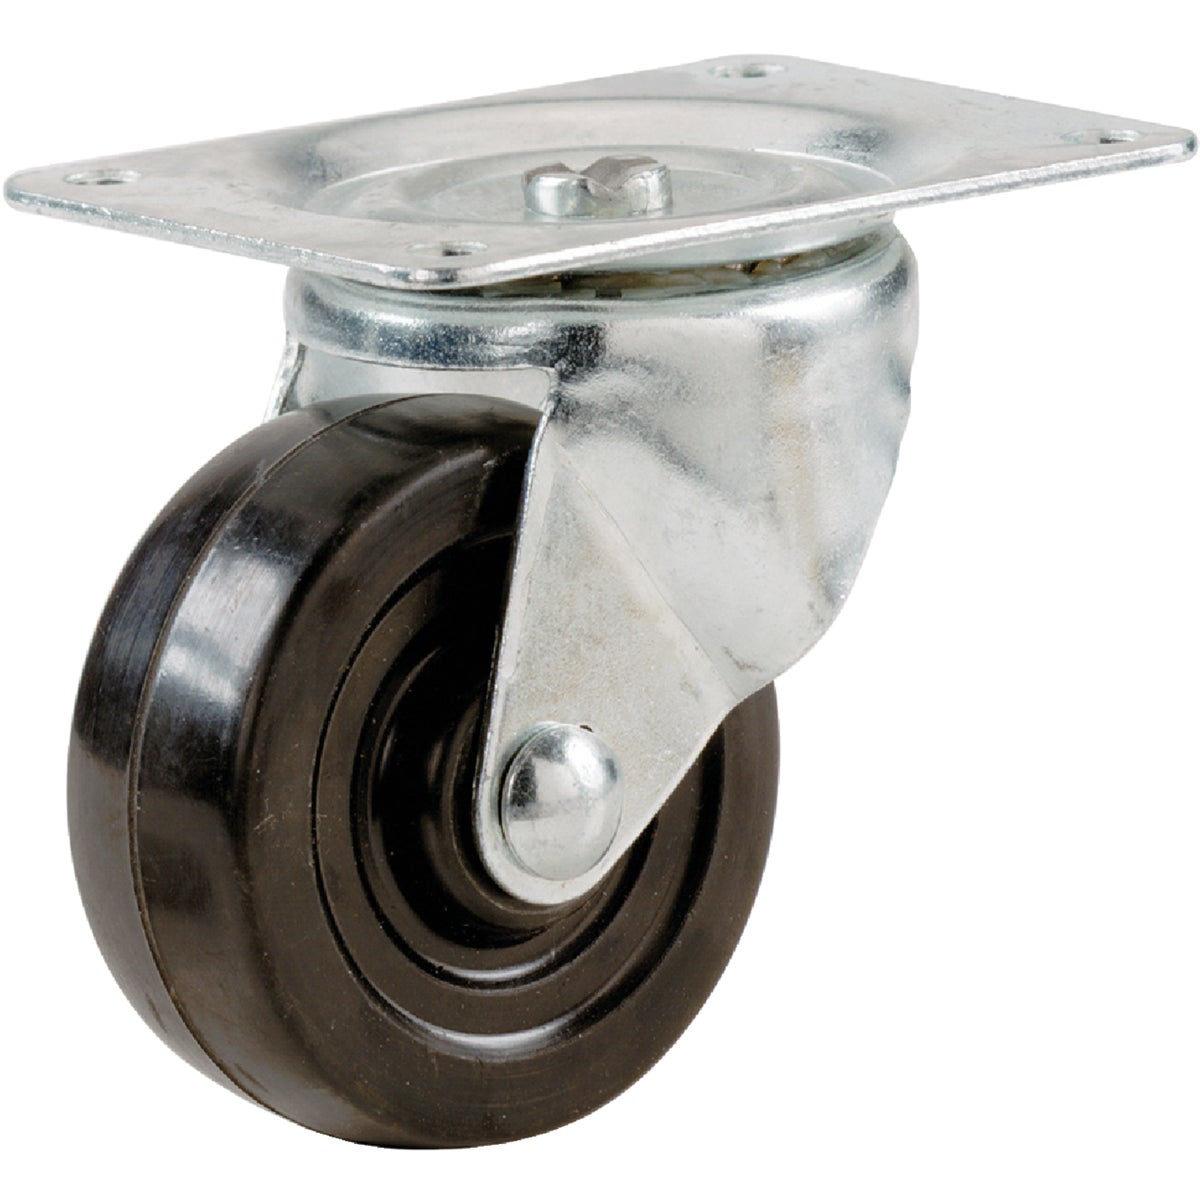 "3"" RUBBER SWIVEL CASTER - 9479 by Shepherd Hardware"